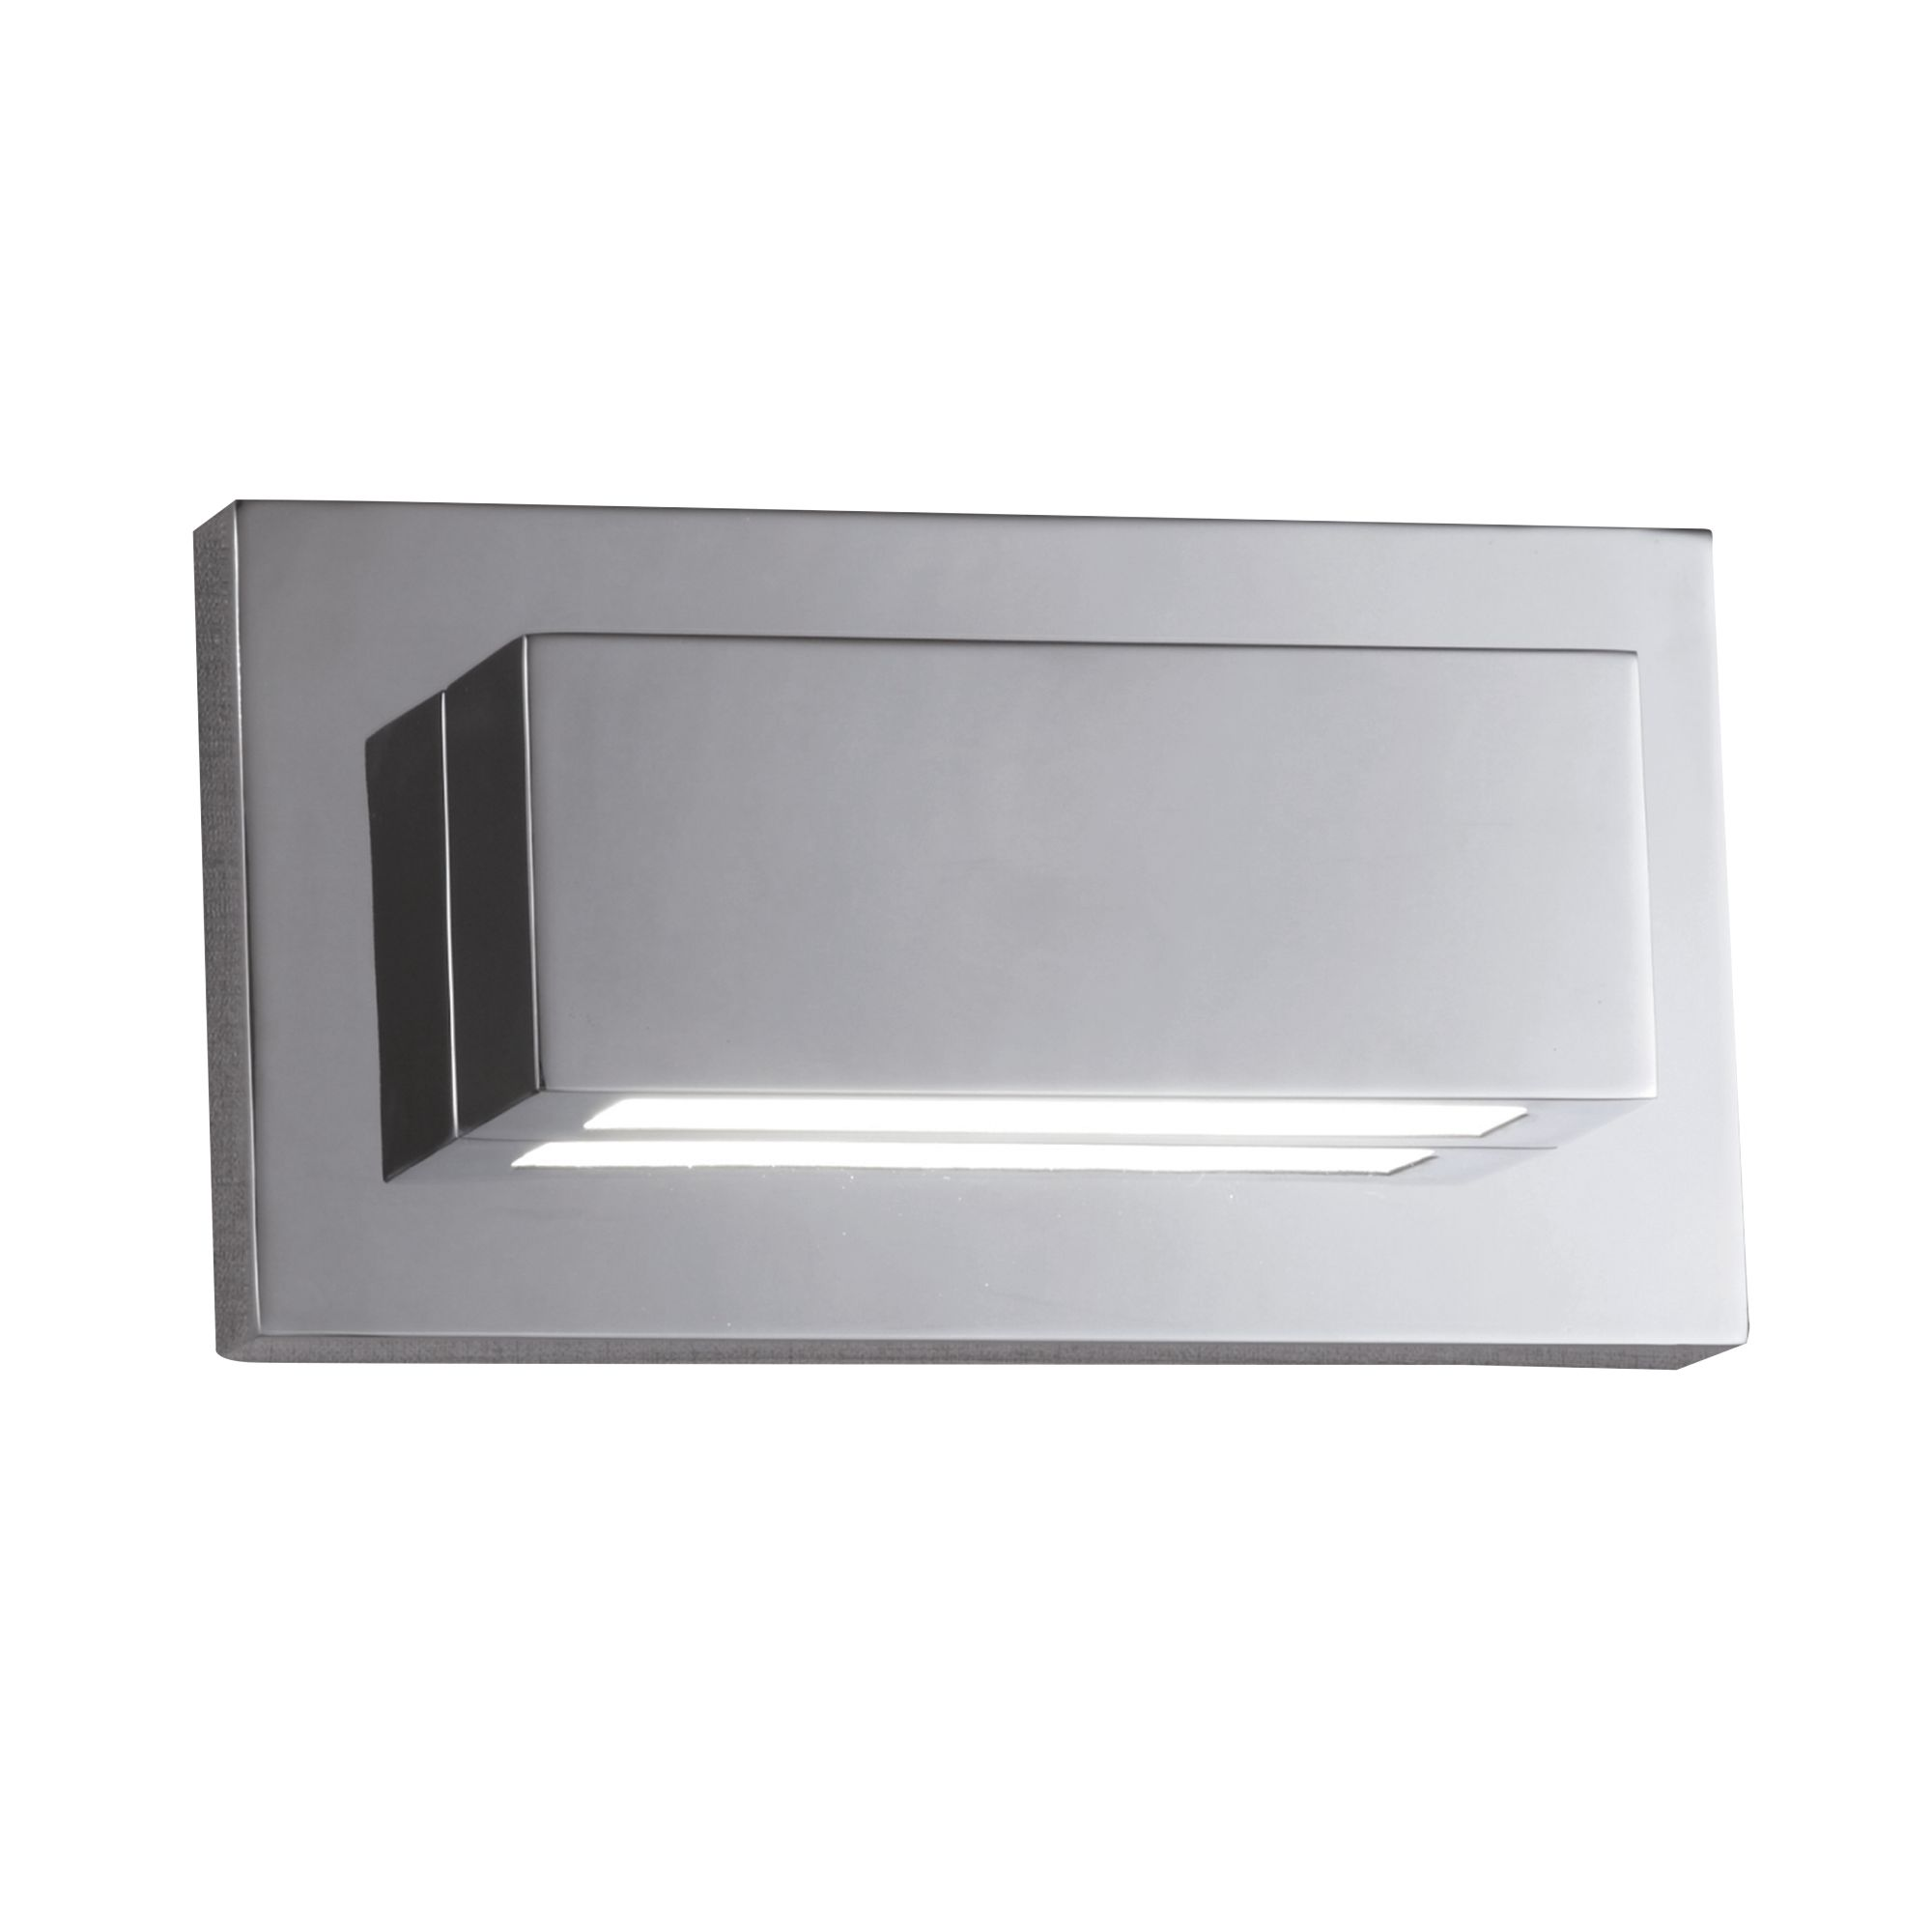 Chrome 2 Led Oblong Wall Light With Up & Down Light